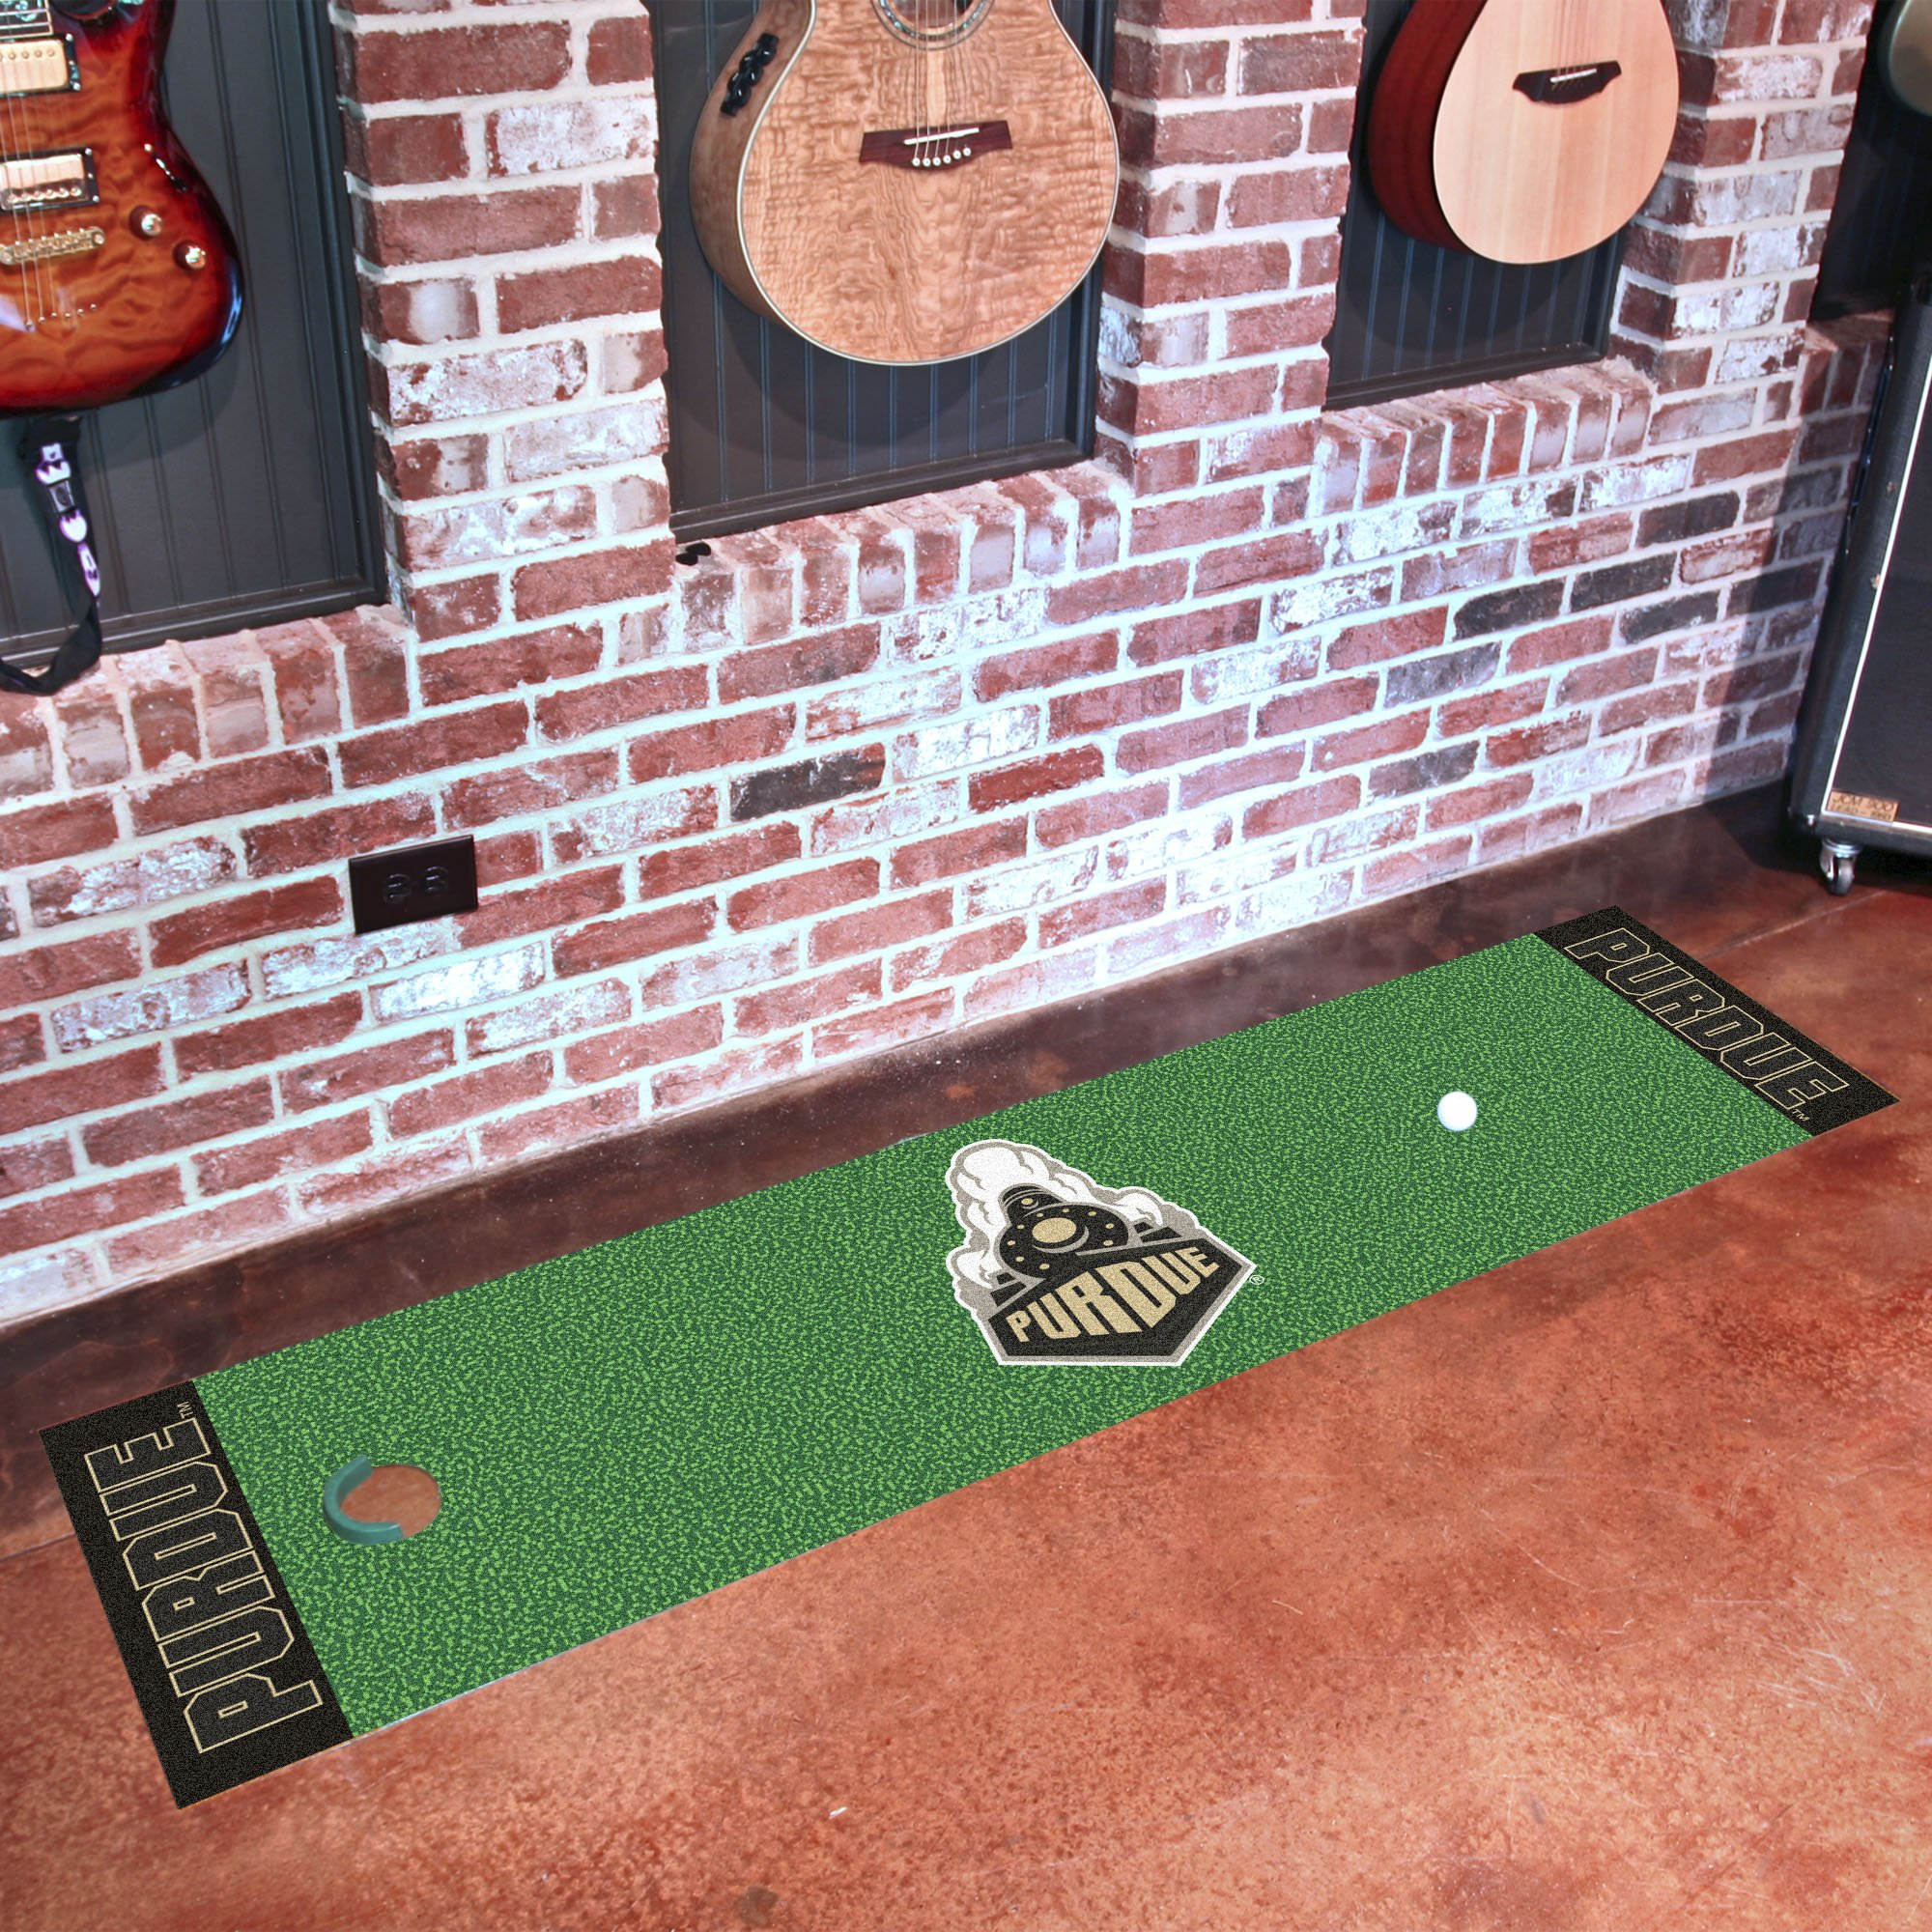 NCAA Purdue University Boilermakers Putting Green Mat Golf Accessory by Unknown (Image #2)